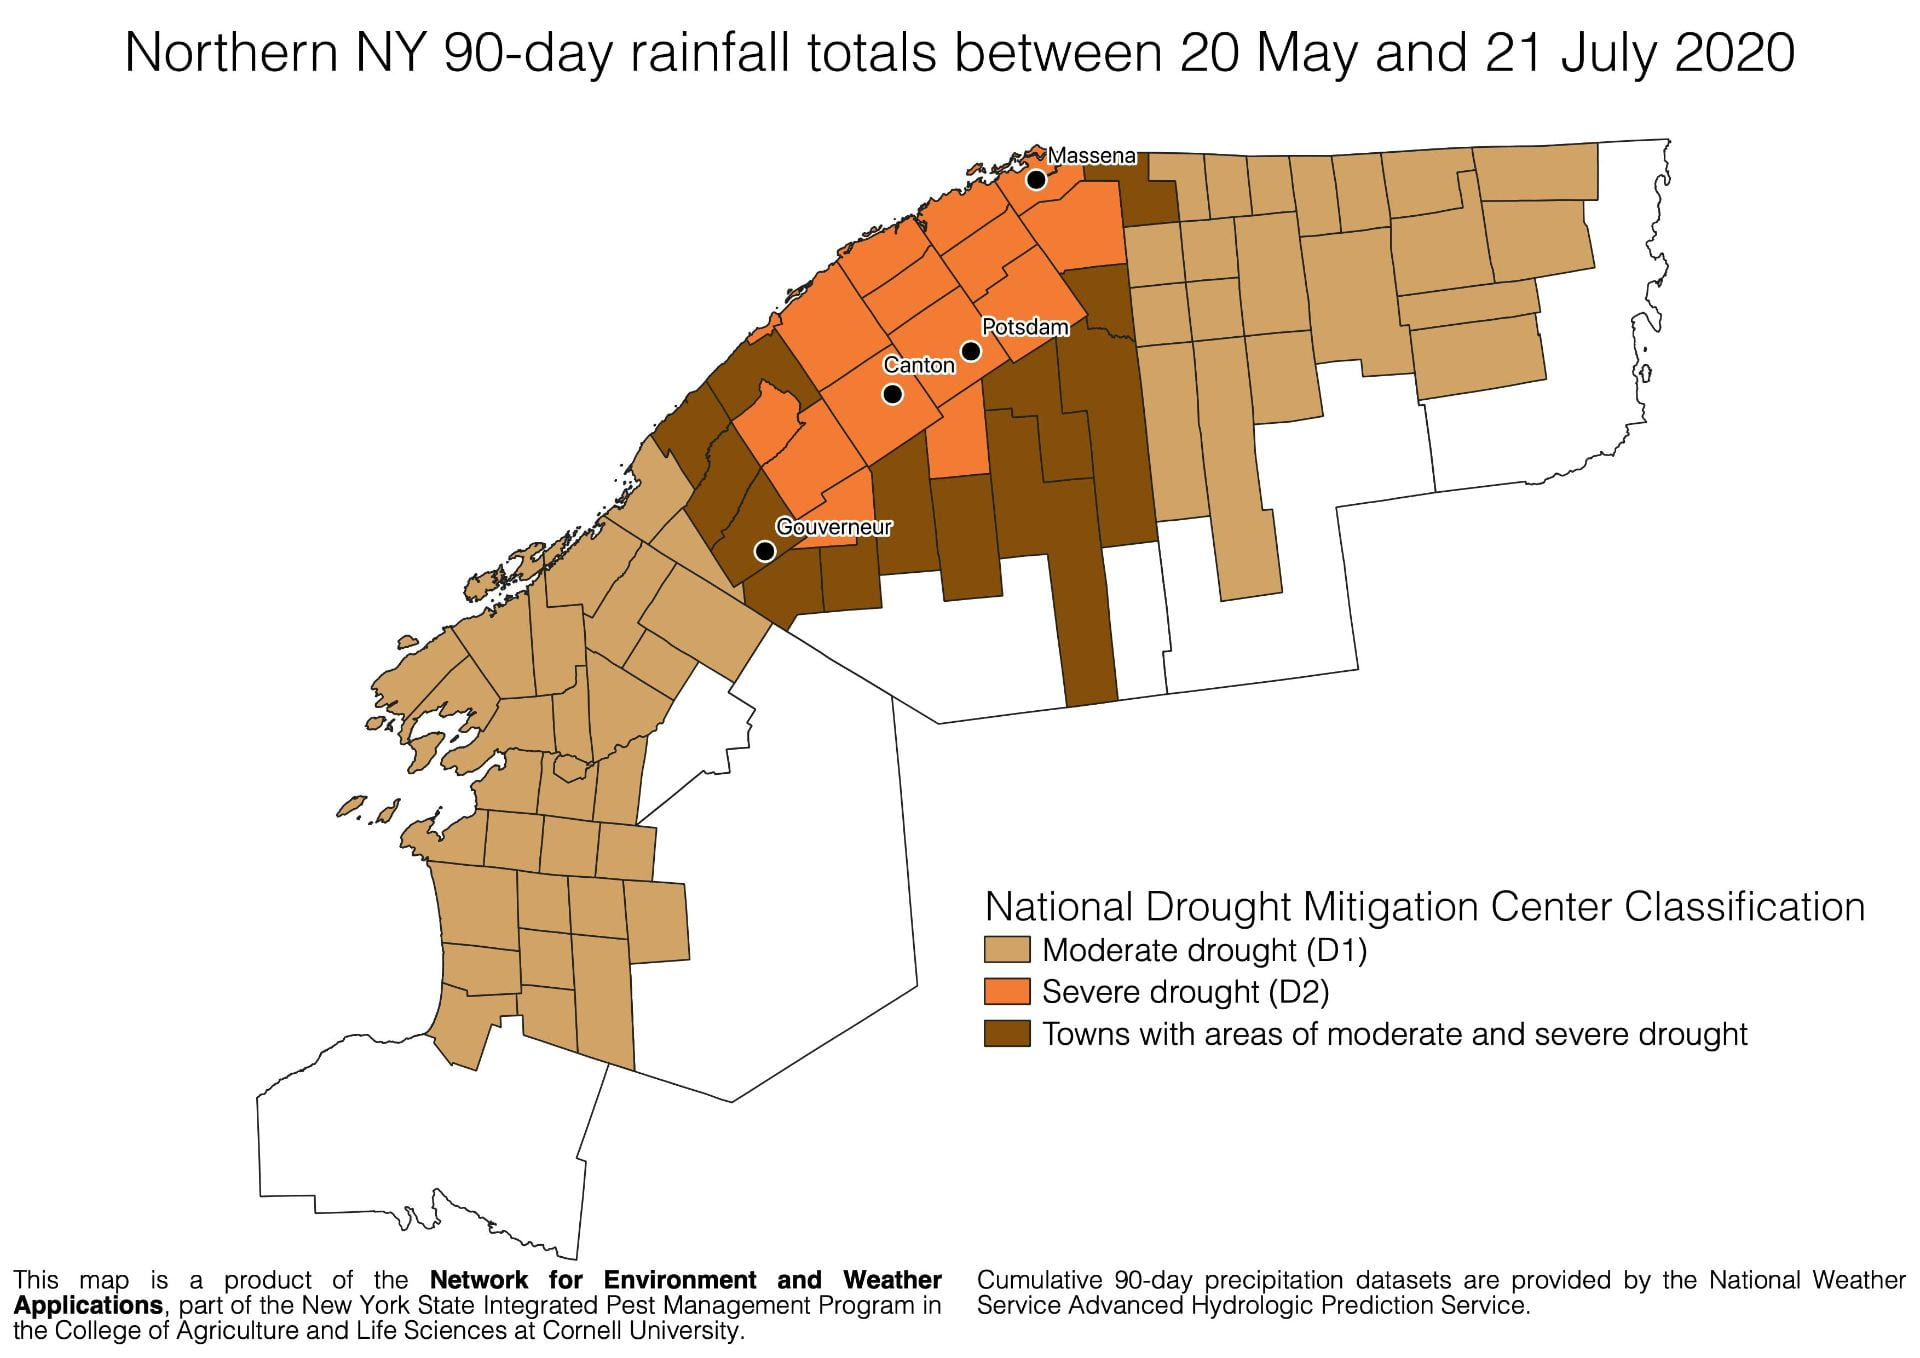 Towns in northern New York experiencing moderate to severe drought conditions according to the National Drought Mitigation Center as of 21 July 2020.